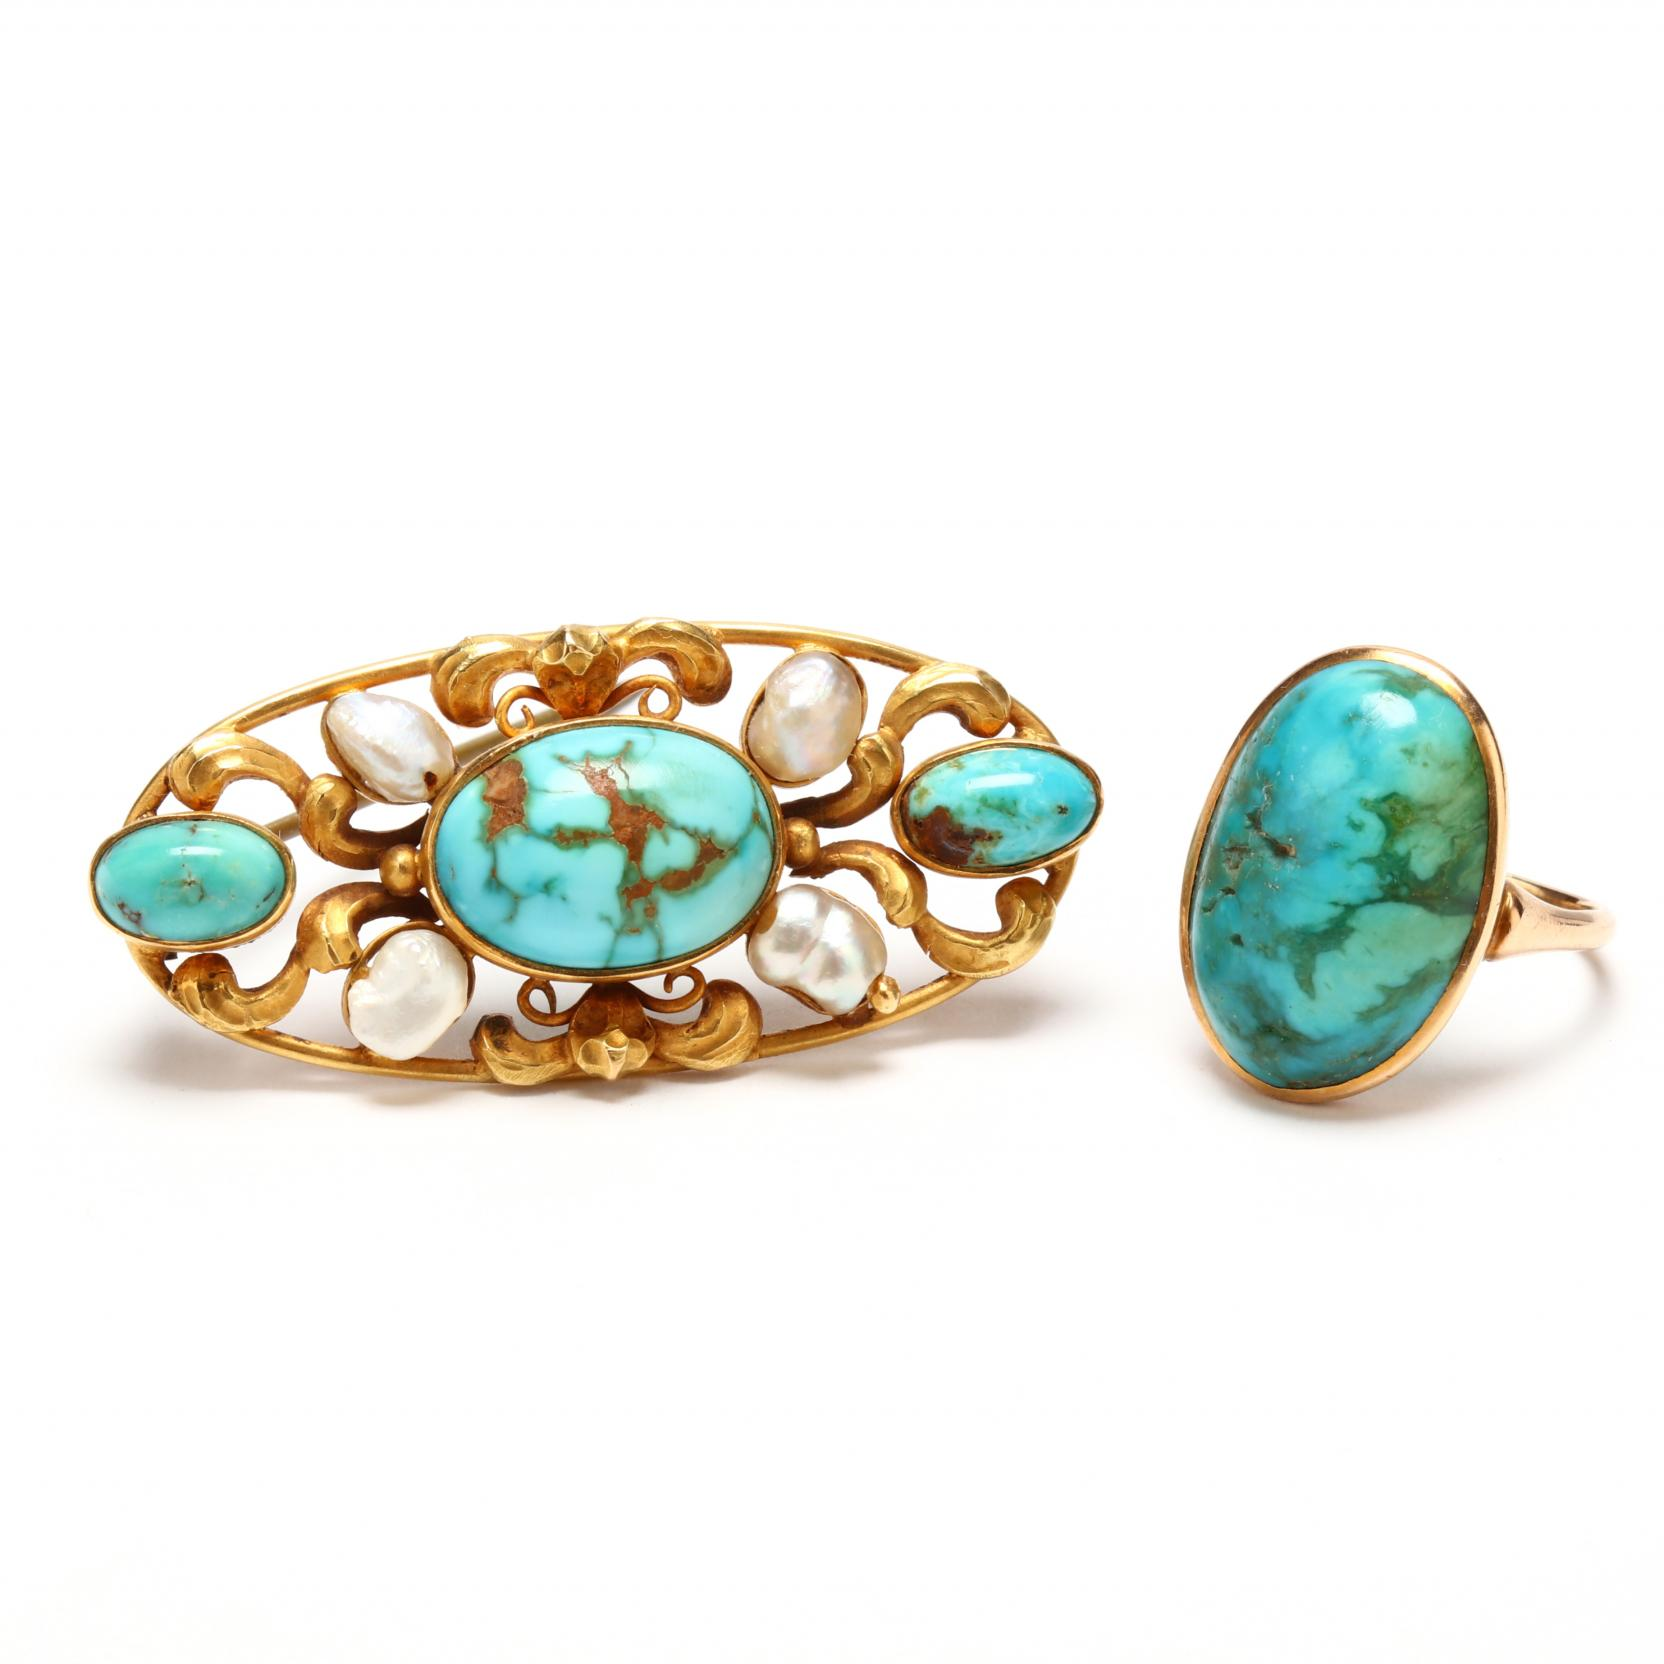 vintage-turquoise-brooch-and-ring